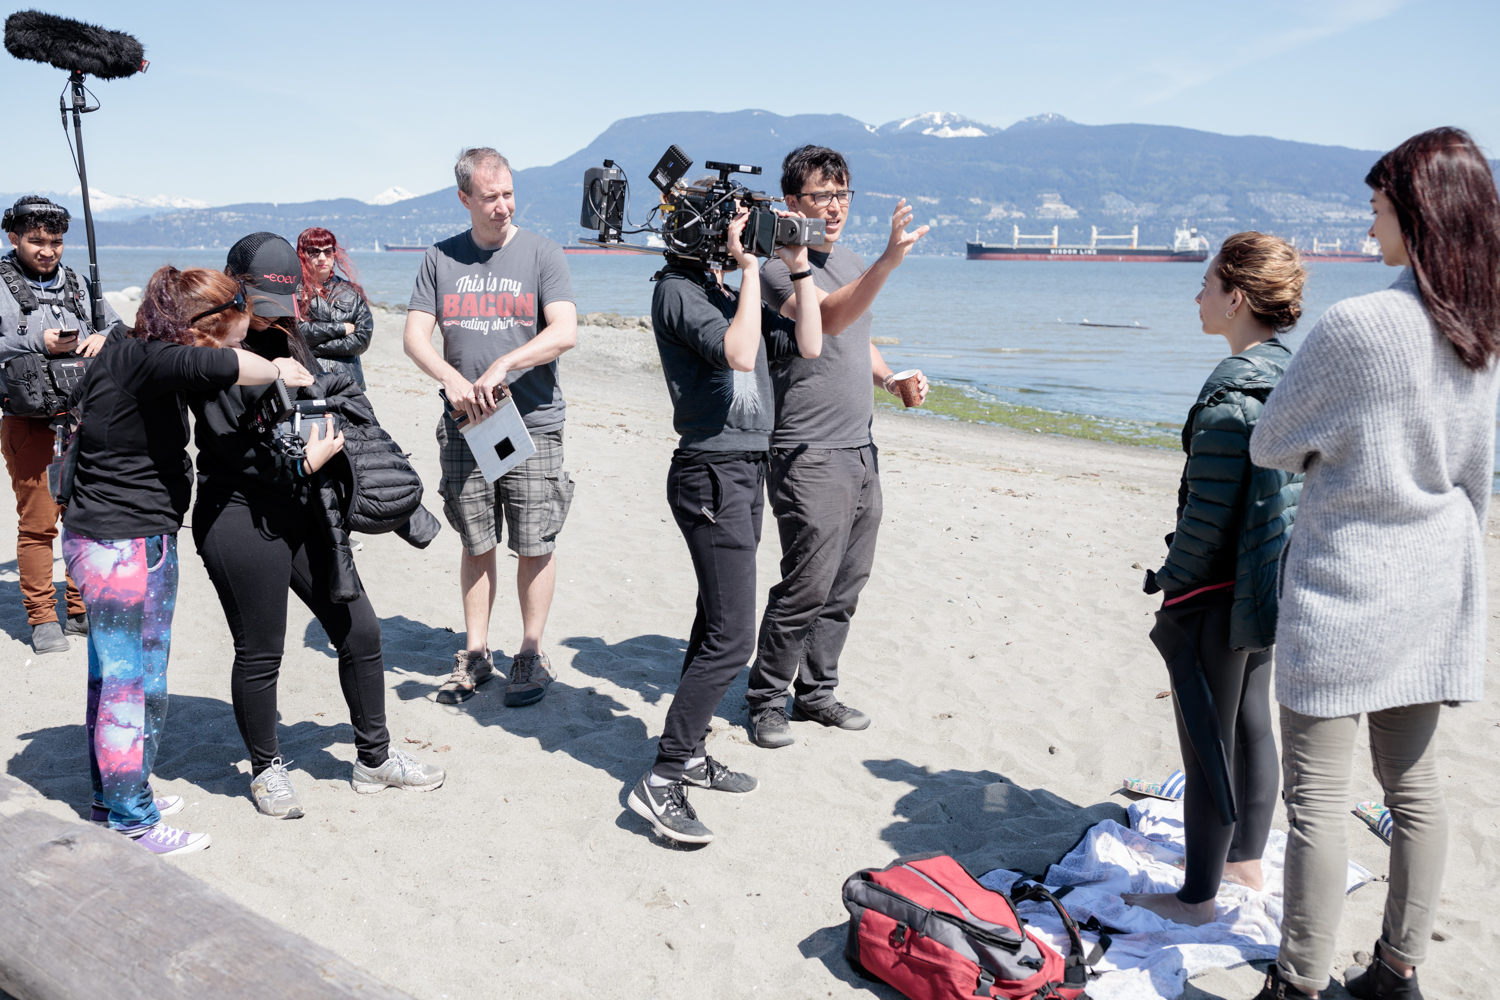 FotoVie John-Evan Snow Victoria BC BTS Photographer 13 Miles